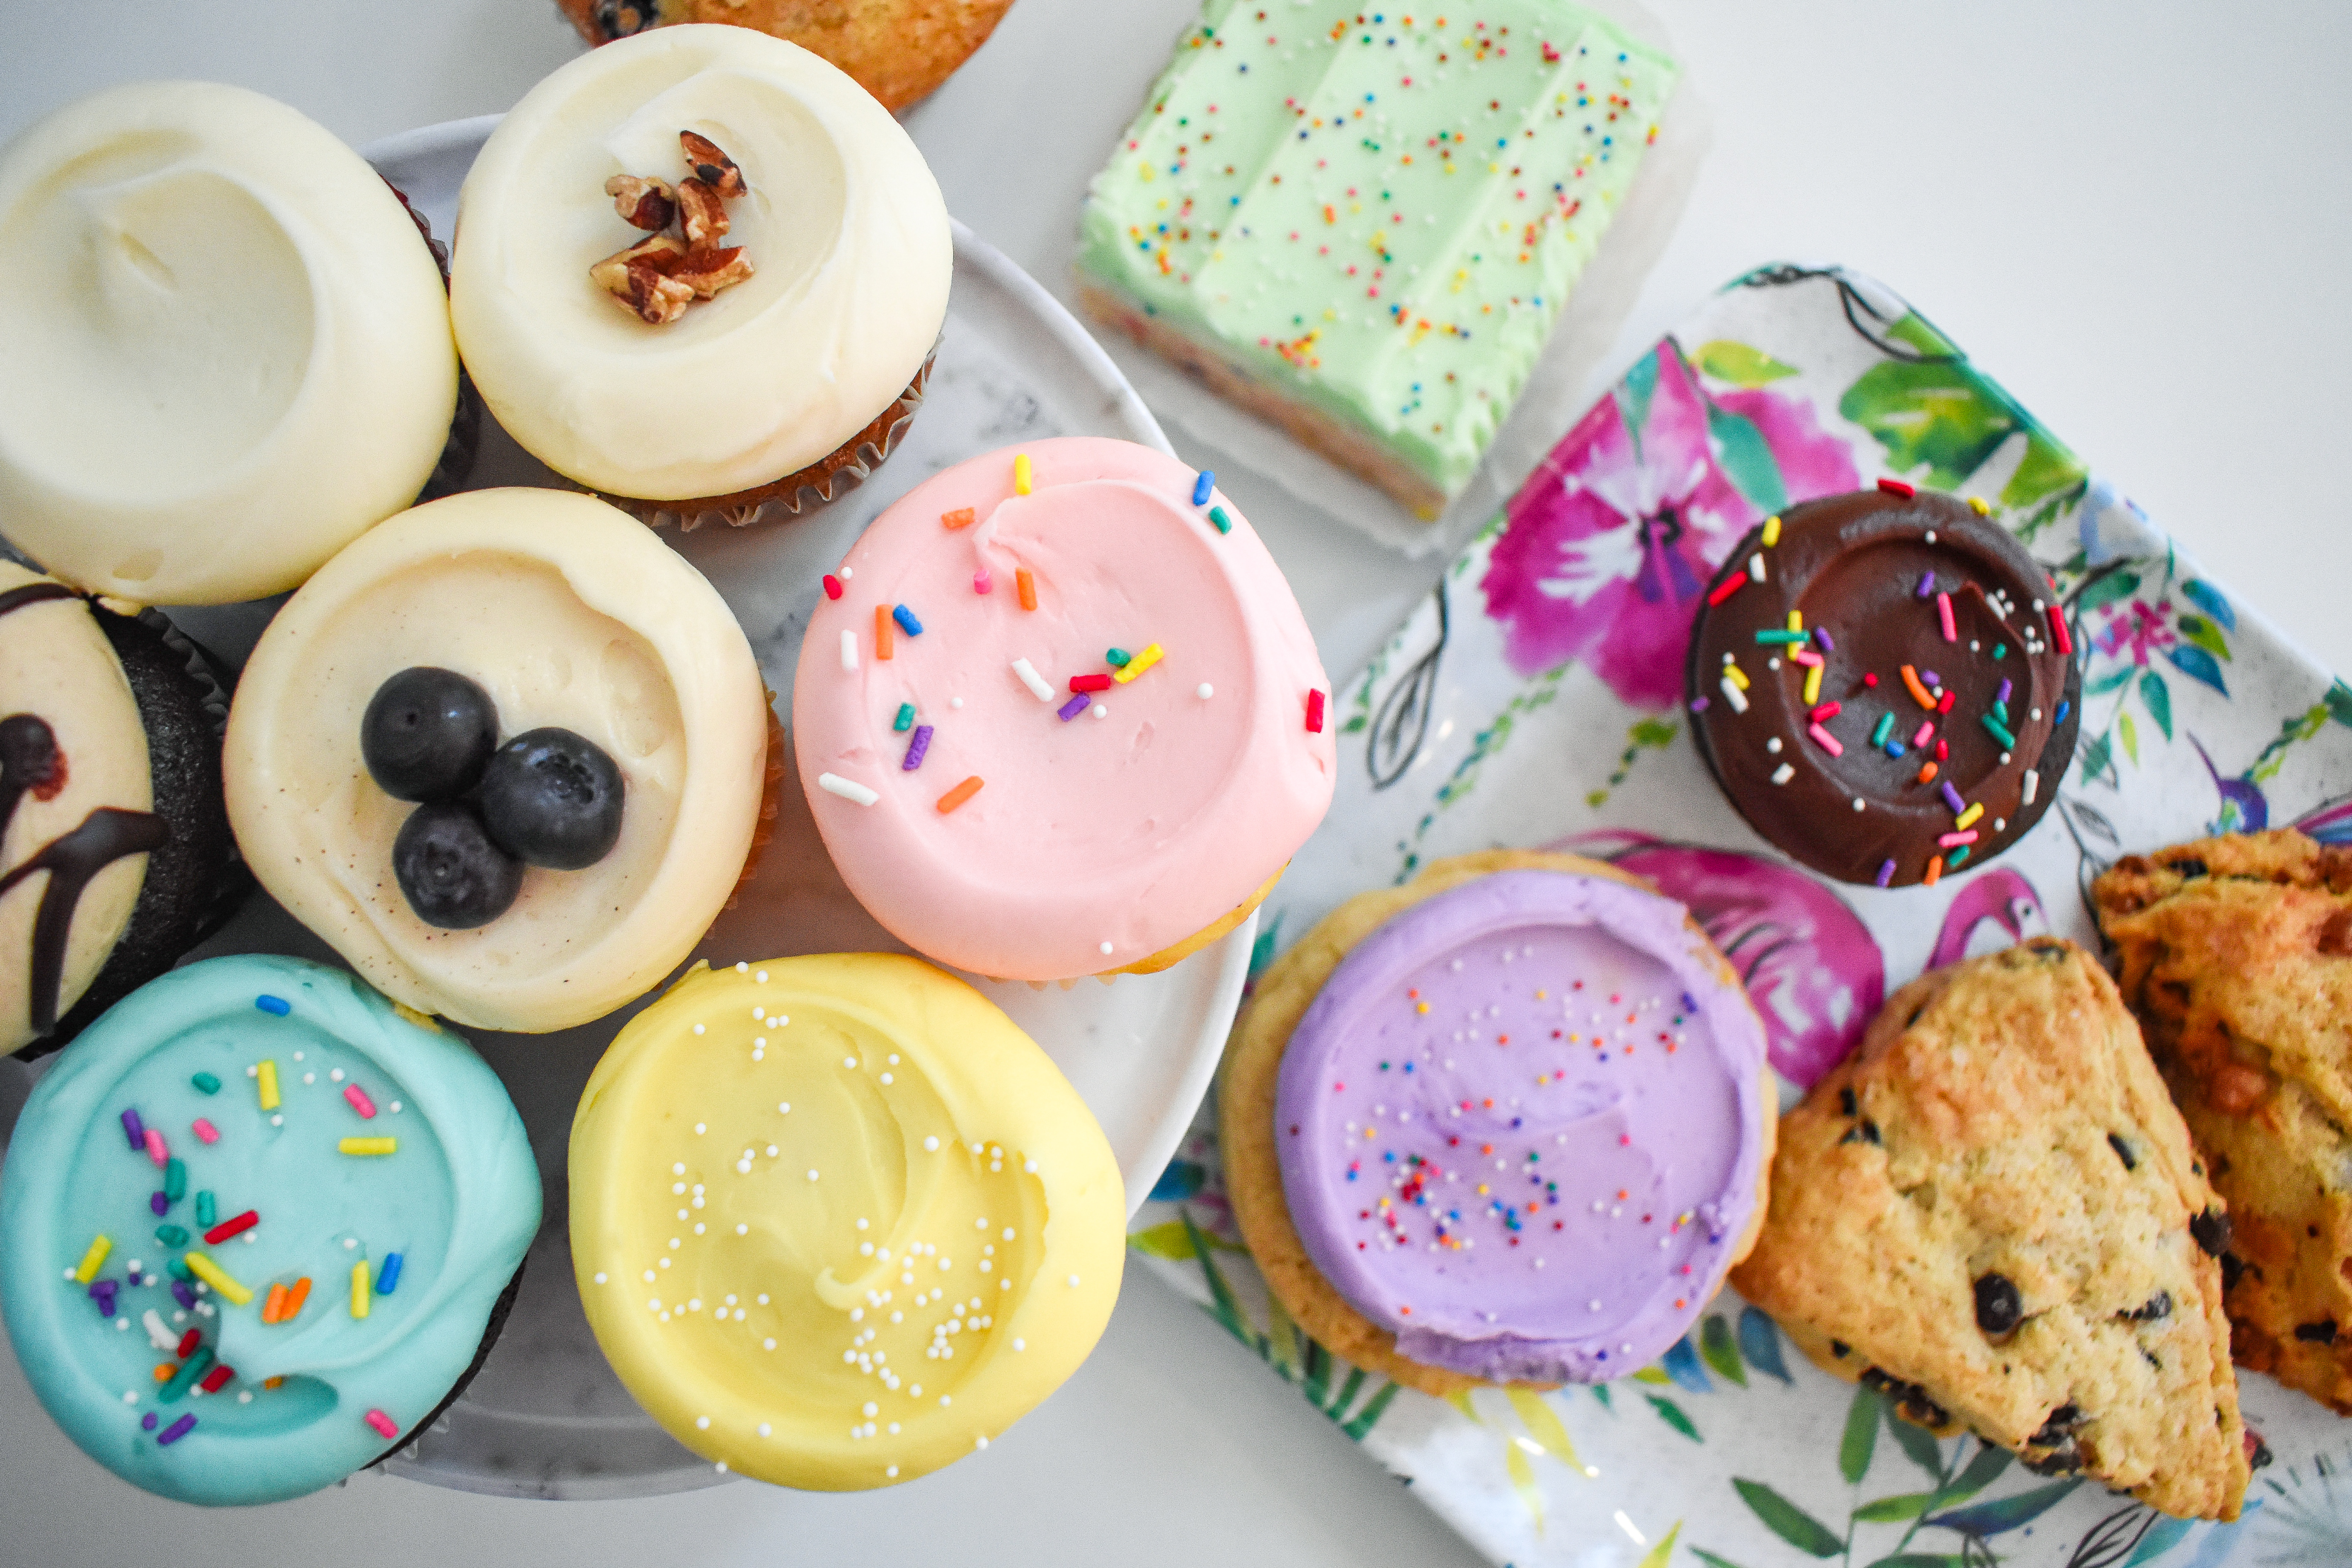 A table filled with cupcakes and baked goods.